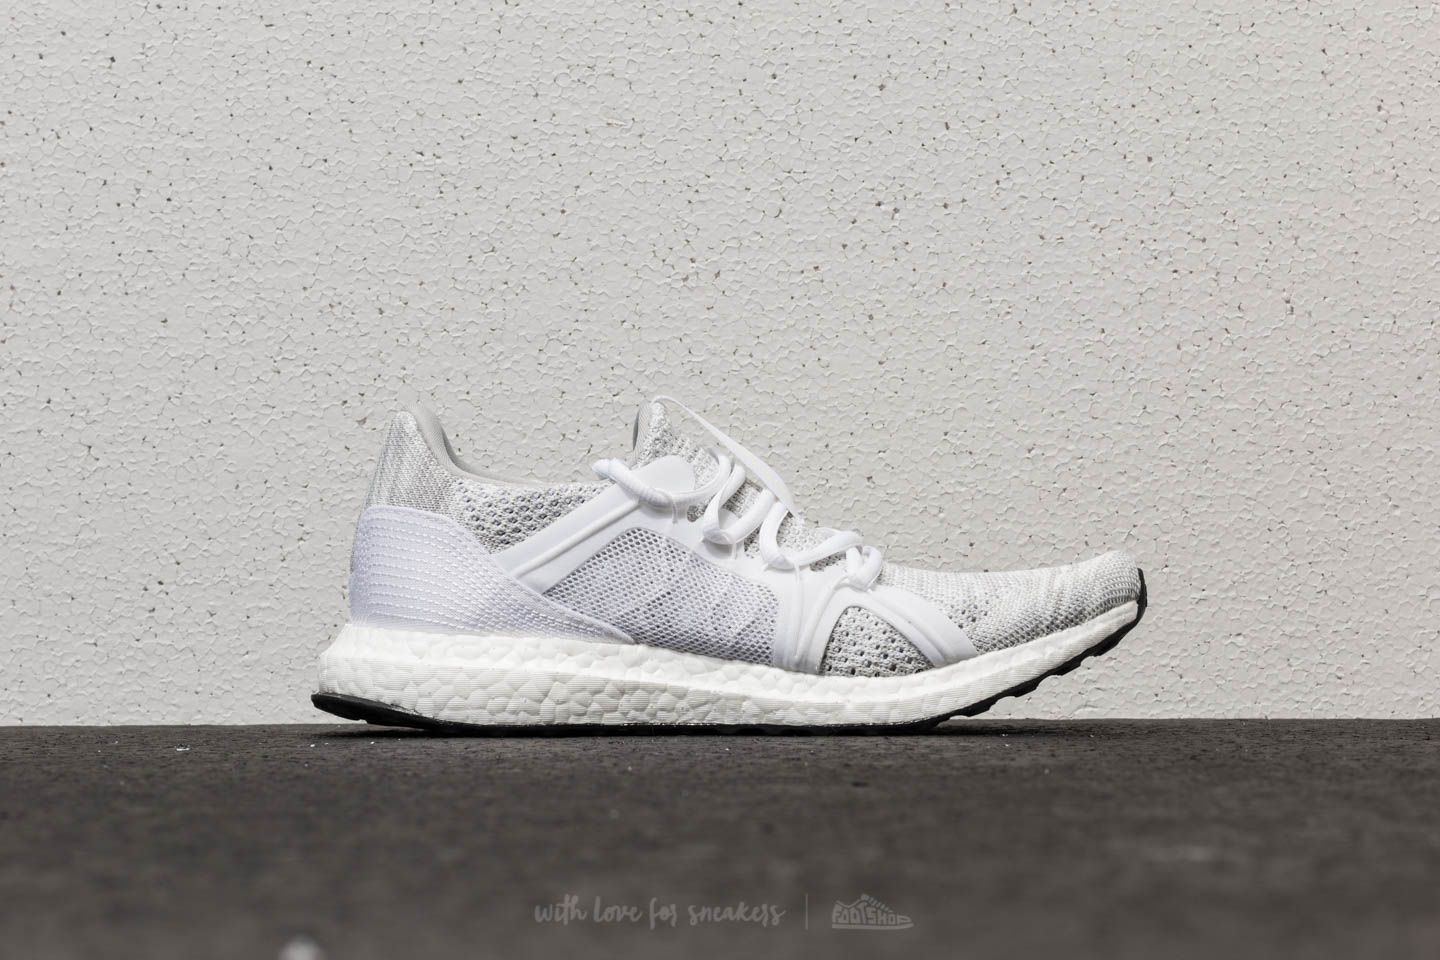 f2a75ec89 adidas x Stella McCartney Ultraboost Parley Stone  Core White  Mirror Blue  at a great